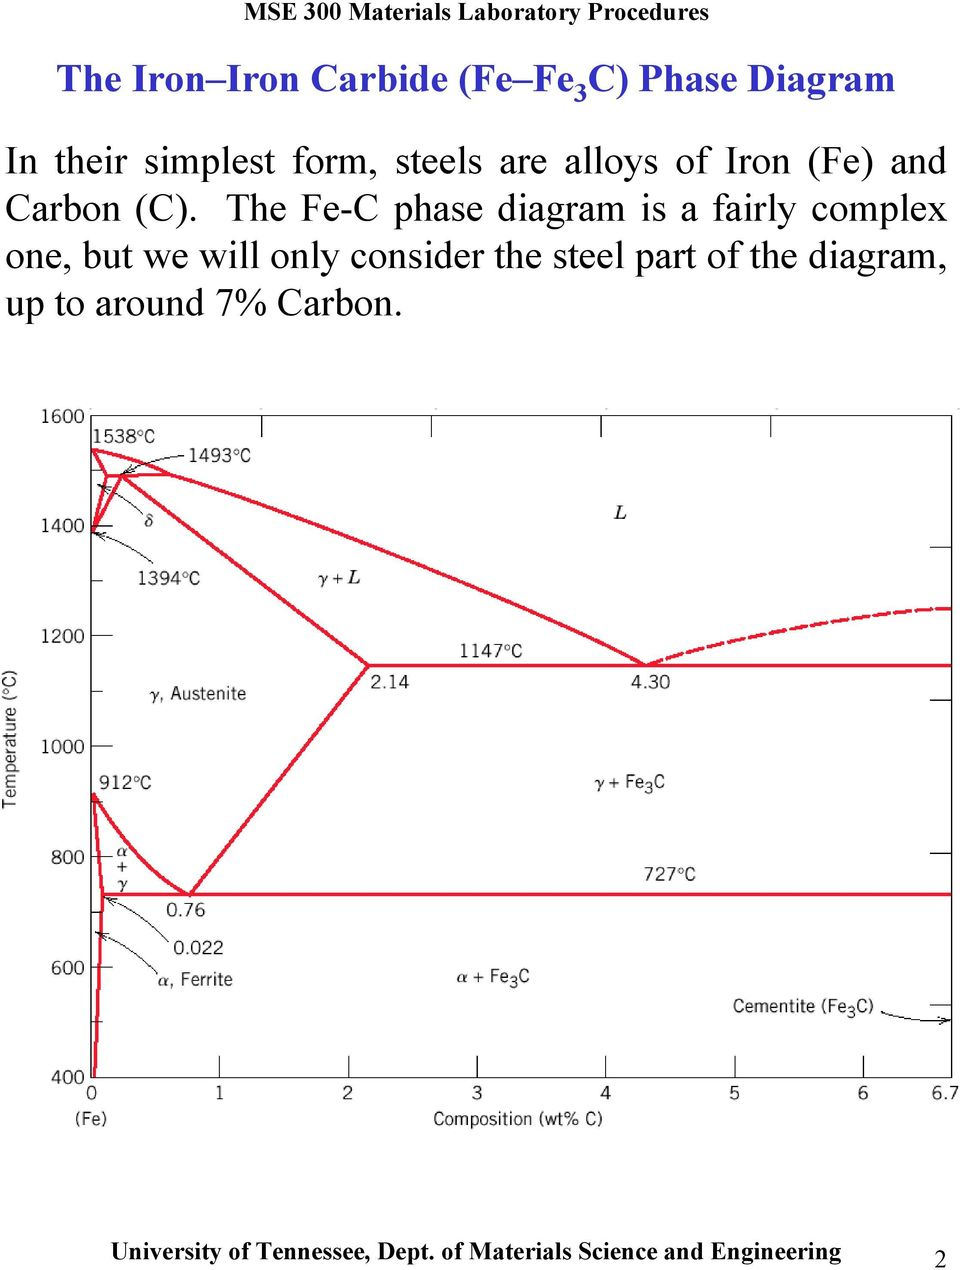 The Fe-C phase diagram is a fairly complex one, but we will only consider the